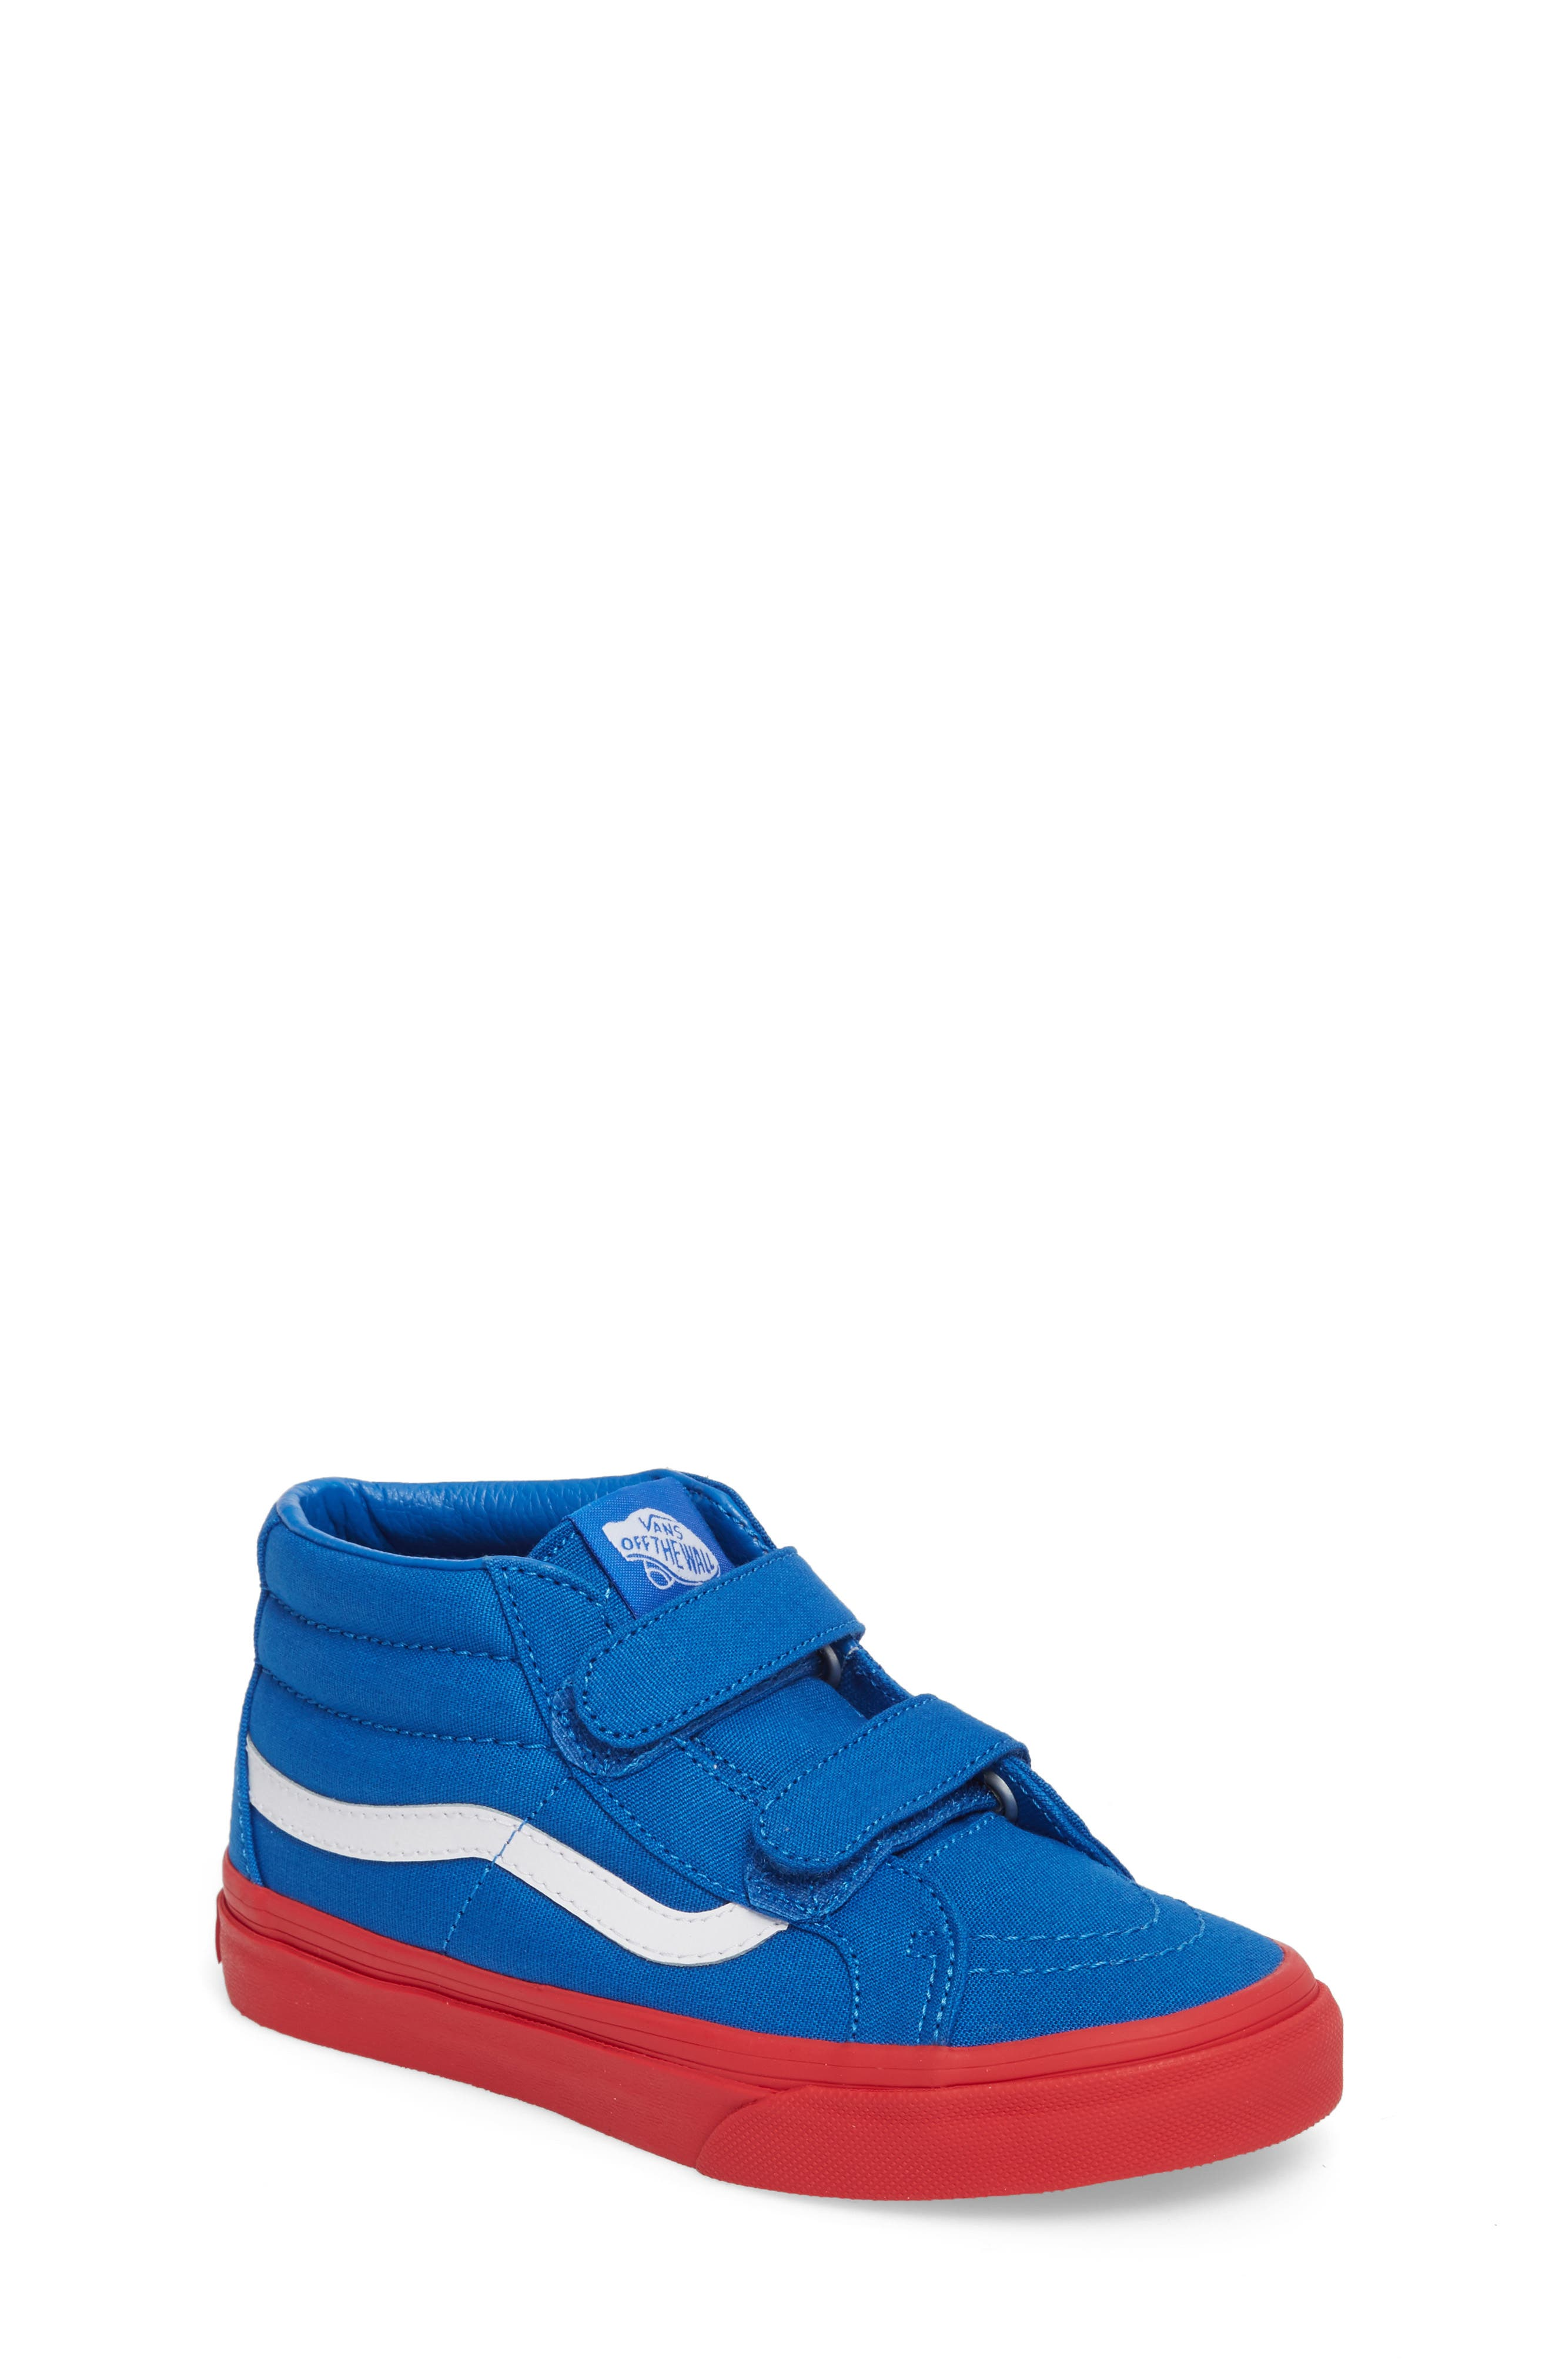 Sk8-Mid Reissue Sneaker,                             Main thumbnail 1, color,                             420